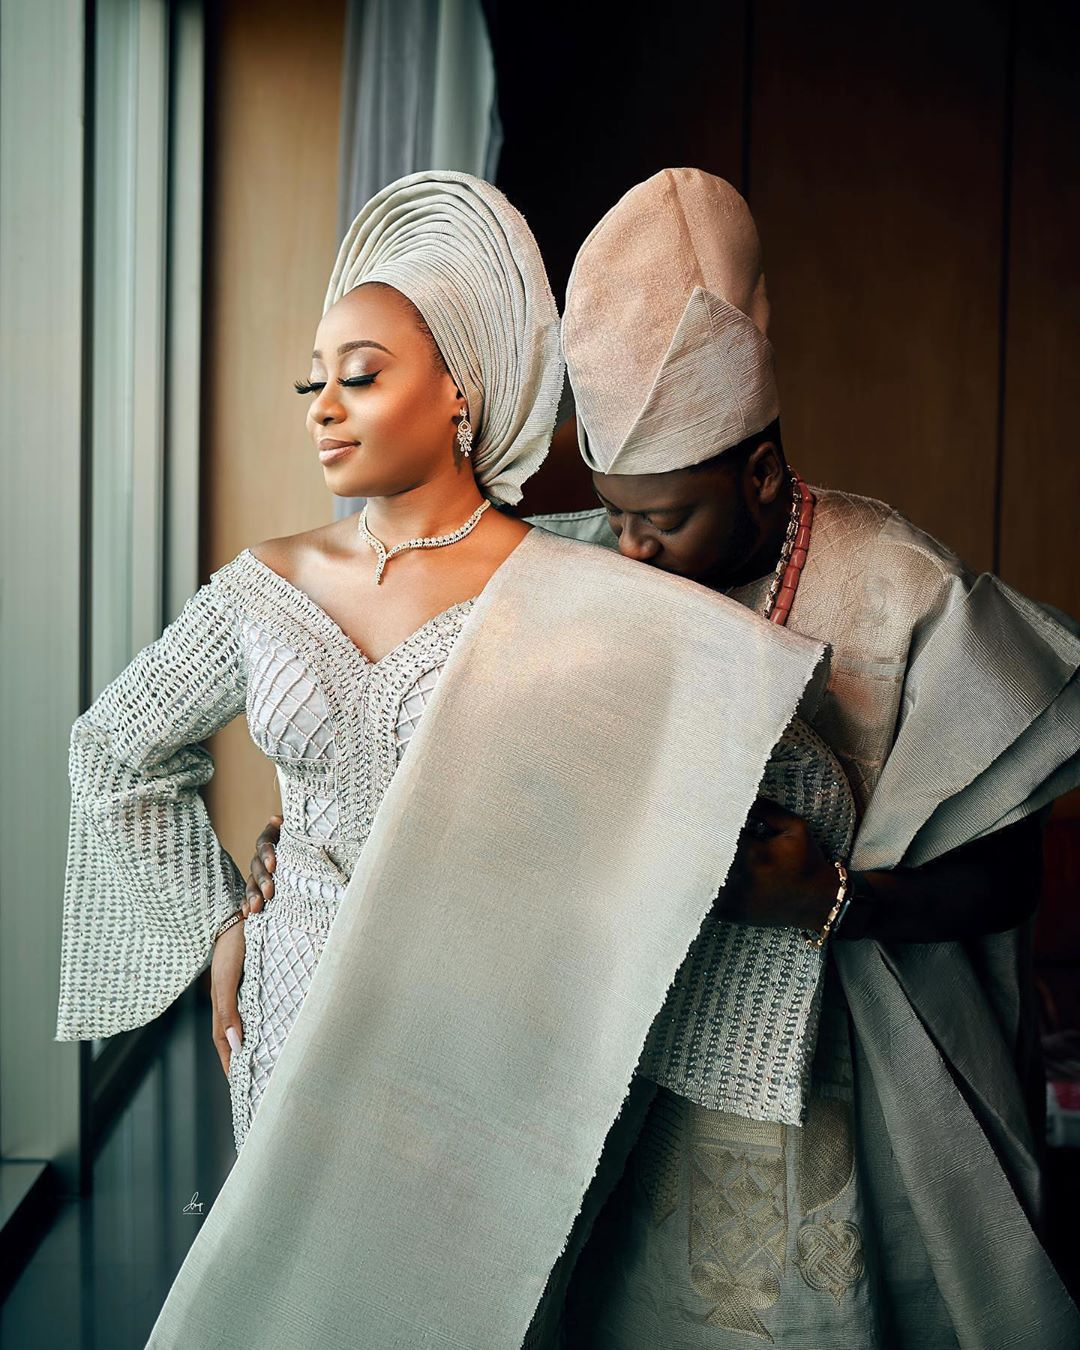 2020 SWEET ASO-EBI STYLES, FASHIONABLE STYLES FOR IMPORTANT EVENTS ... 2